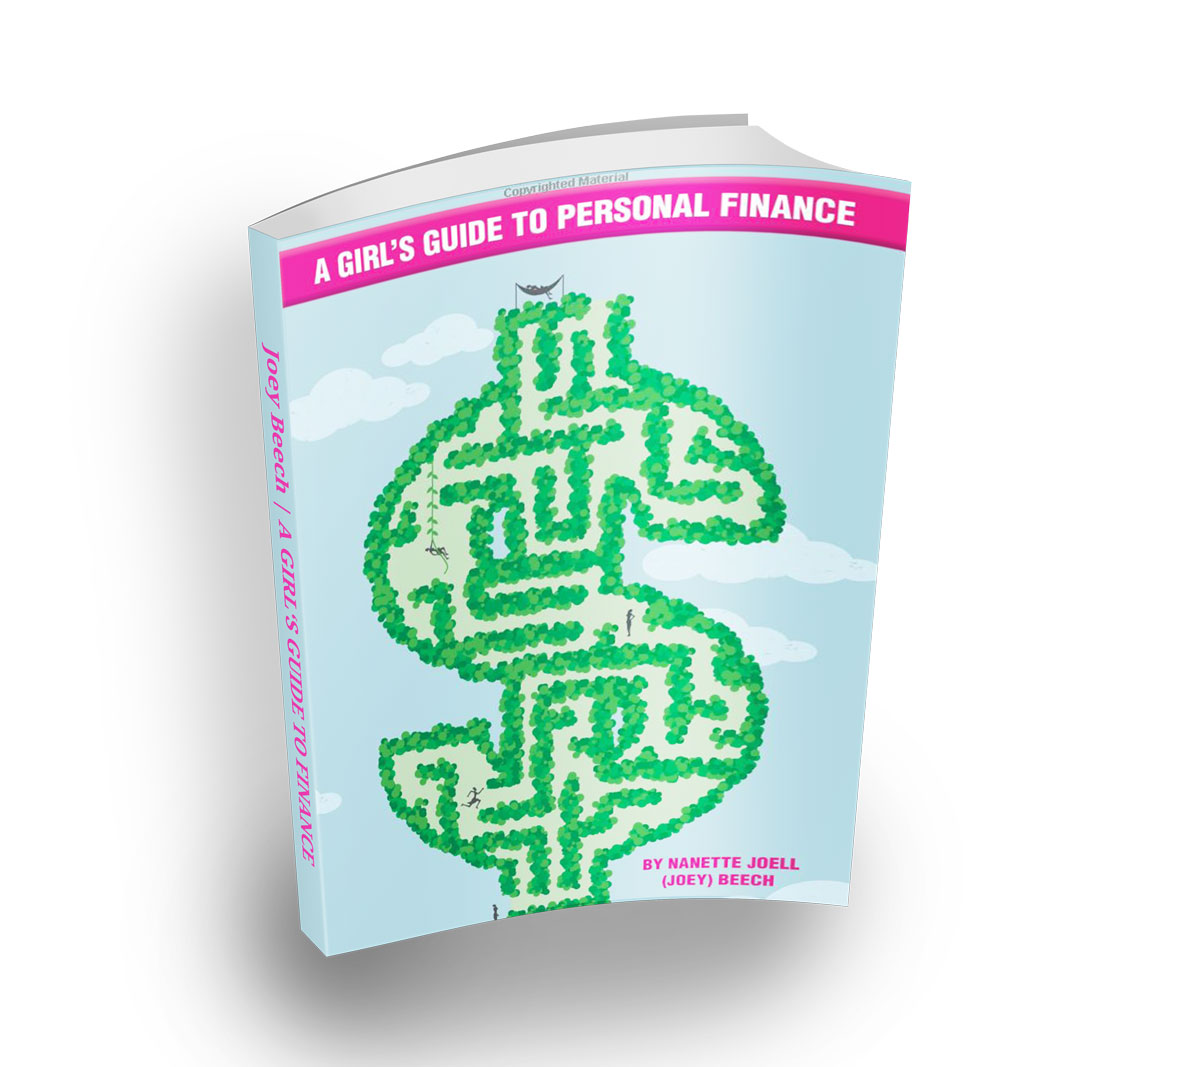 A Girl's Guide to Finance Book Image